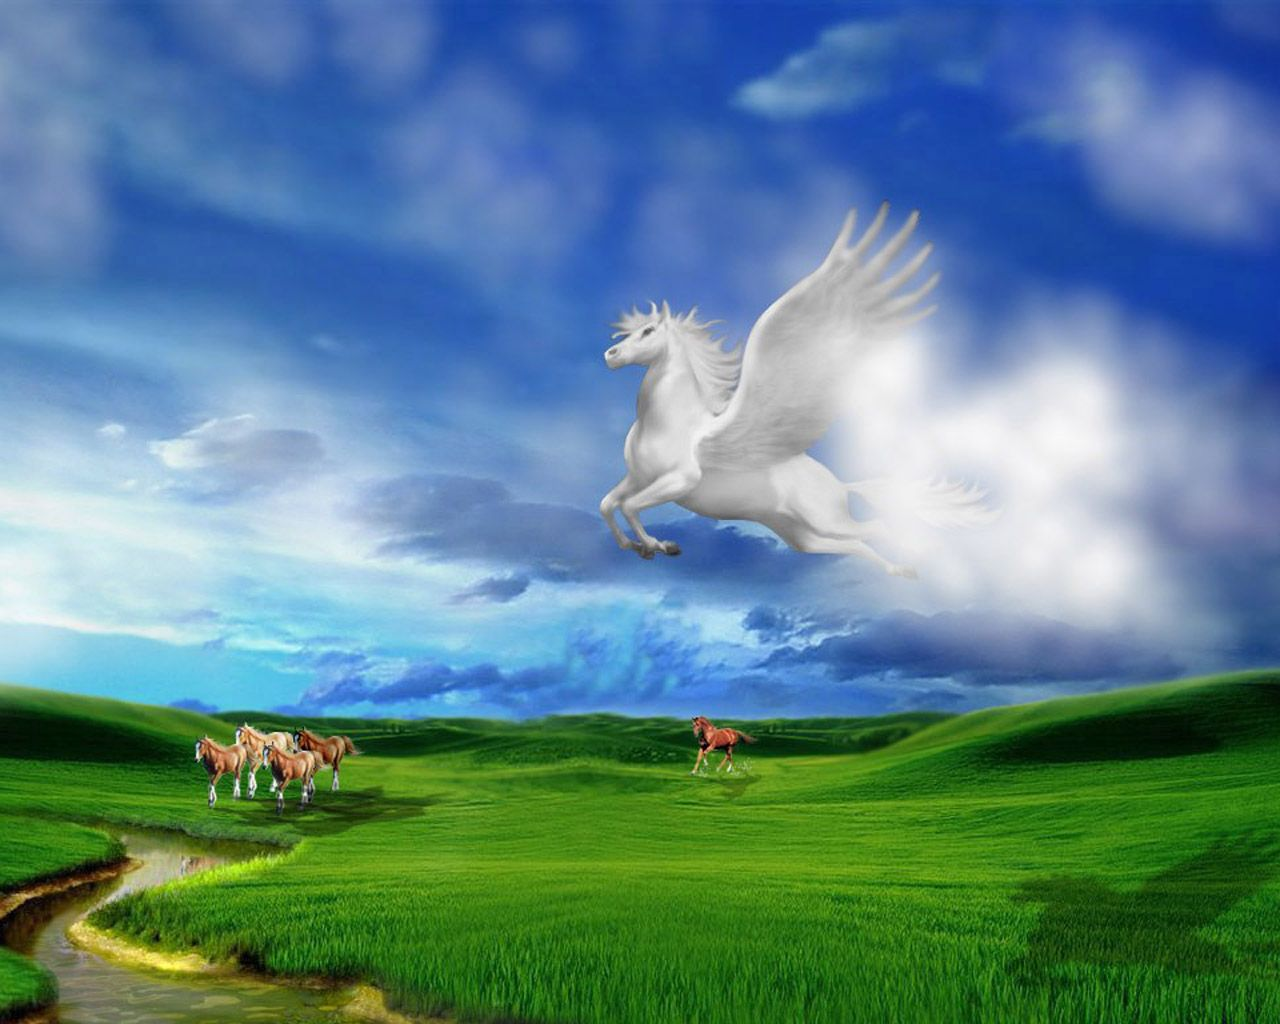 Pegasus Desktop Backgrounds HD Wallpaper 3D Abstract Wallpapers 1280x1024